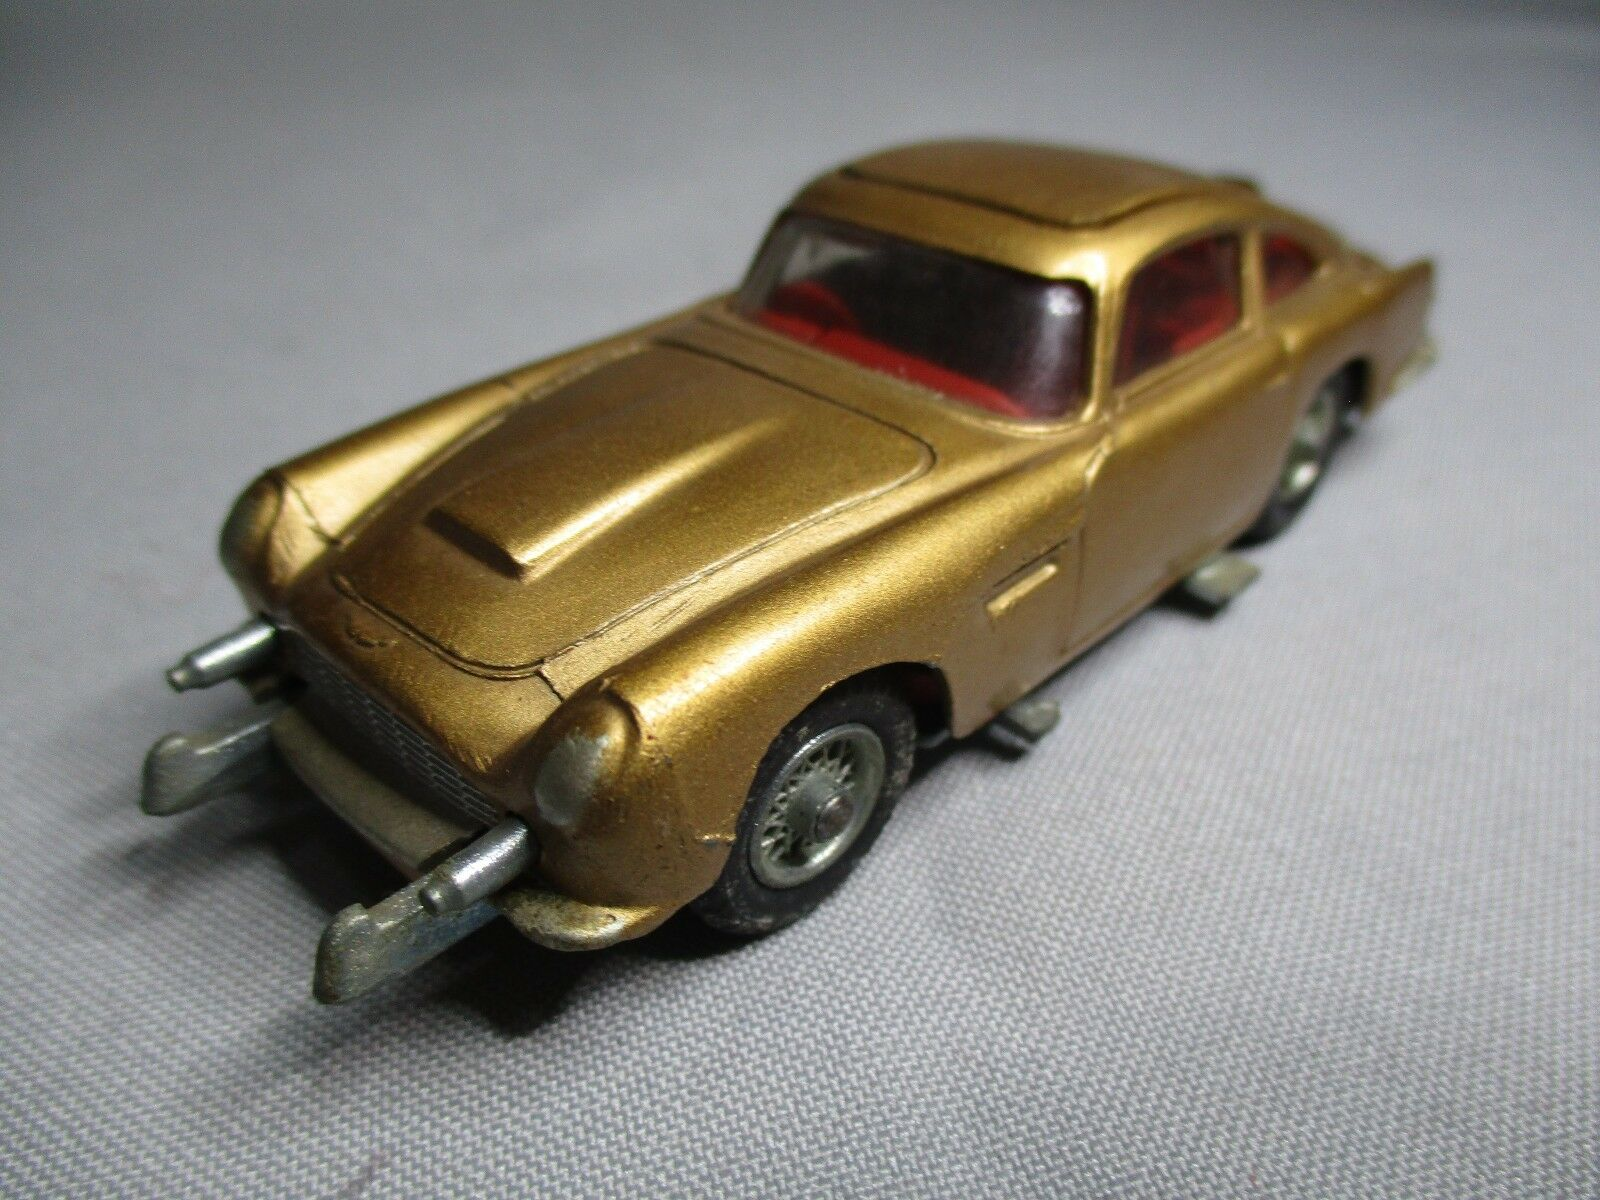 TA460 CORGI TOYS JAMES BOND ASTON MARTIN DB5 007 Ref 261 1 43 BEL ETAT D'ORIGINE